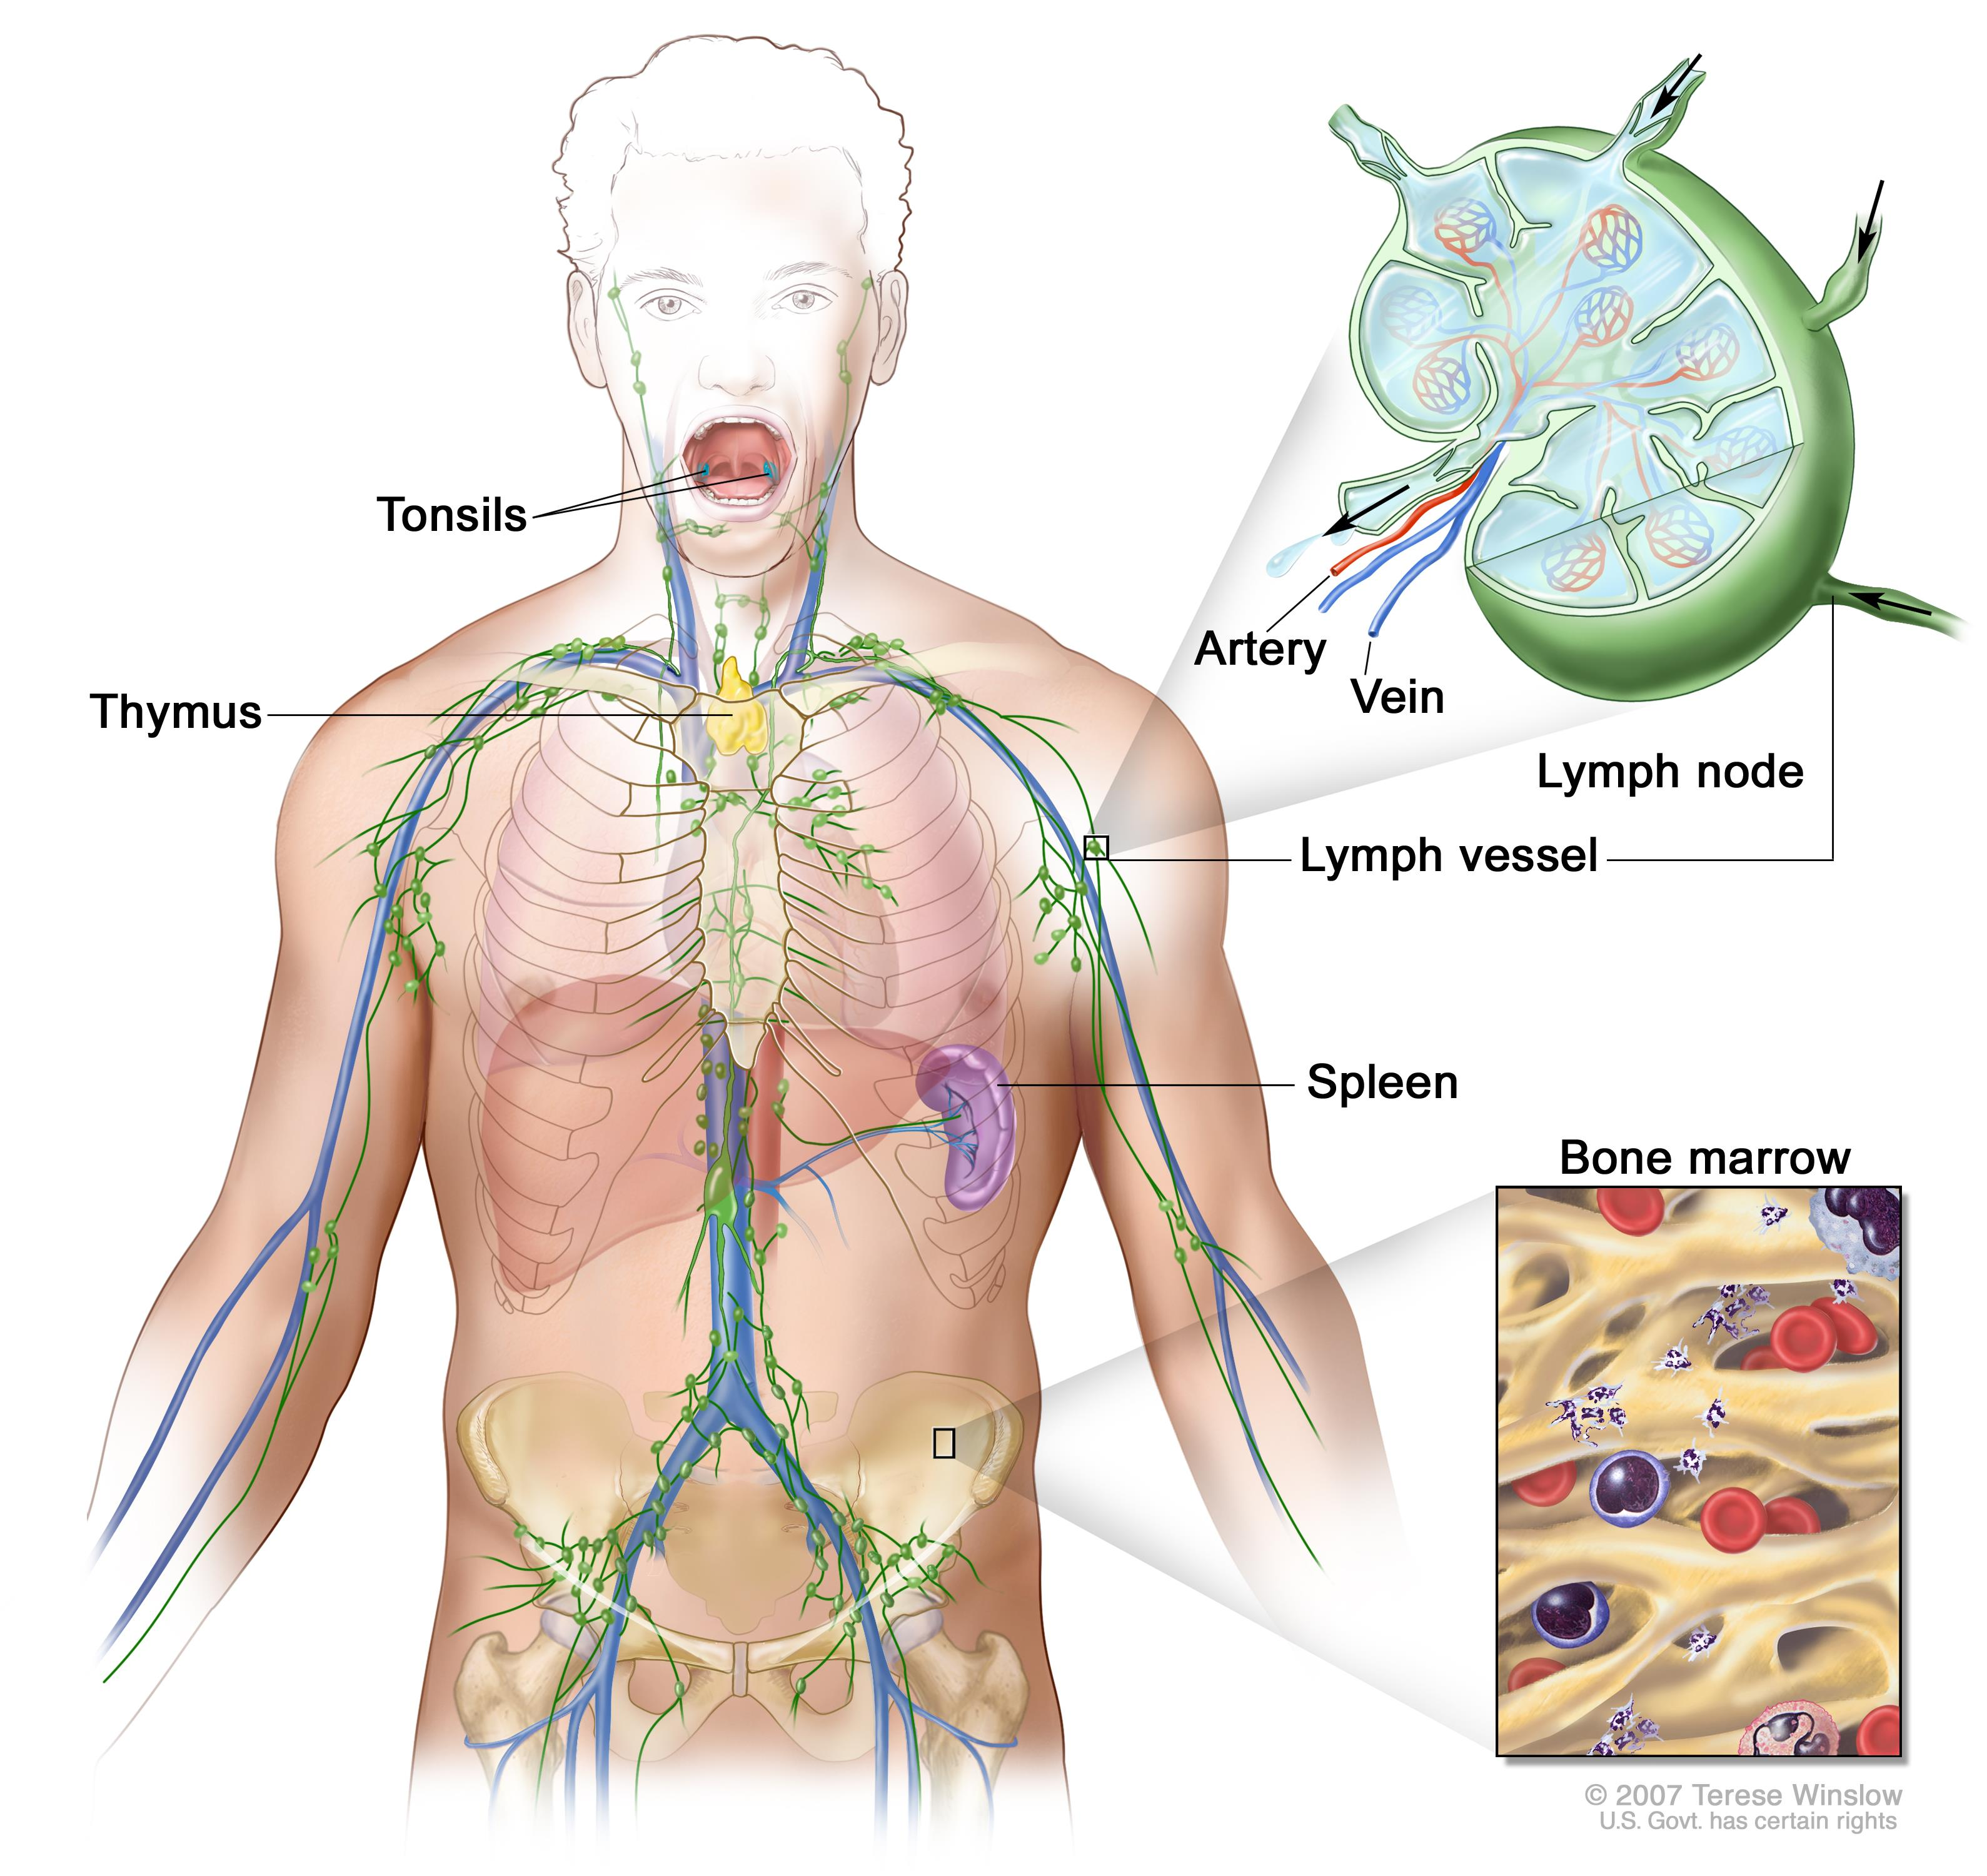 avian anatomy diagram labeled 2 speed 3 phase motor wiring adult non-hodgkin lymphoma treatment (pdq®)—patient version - national cancer institute